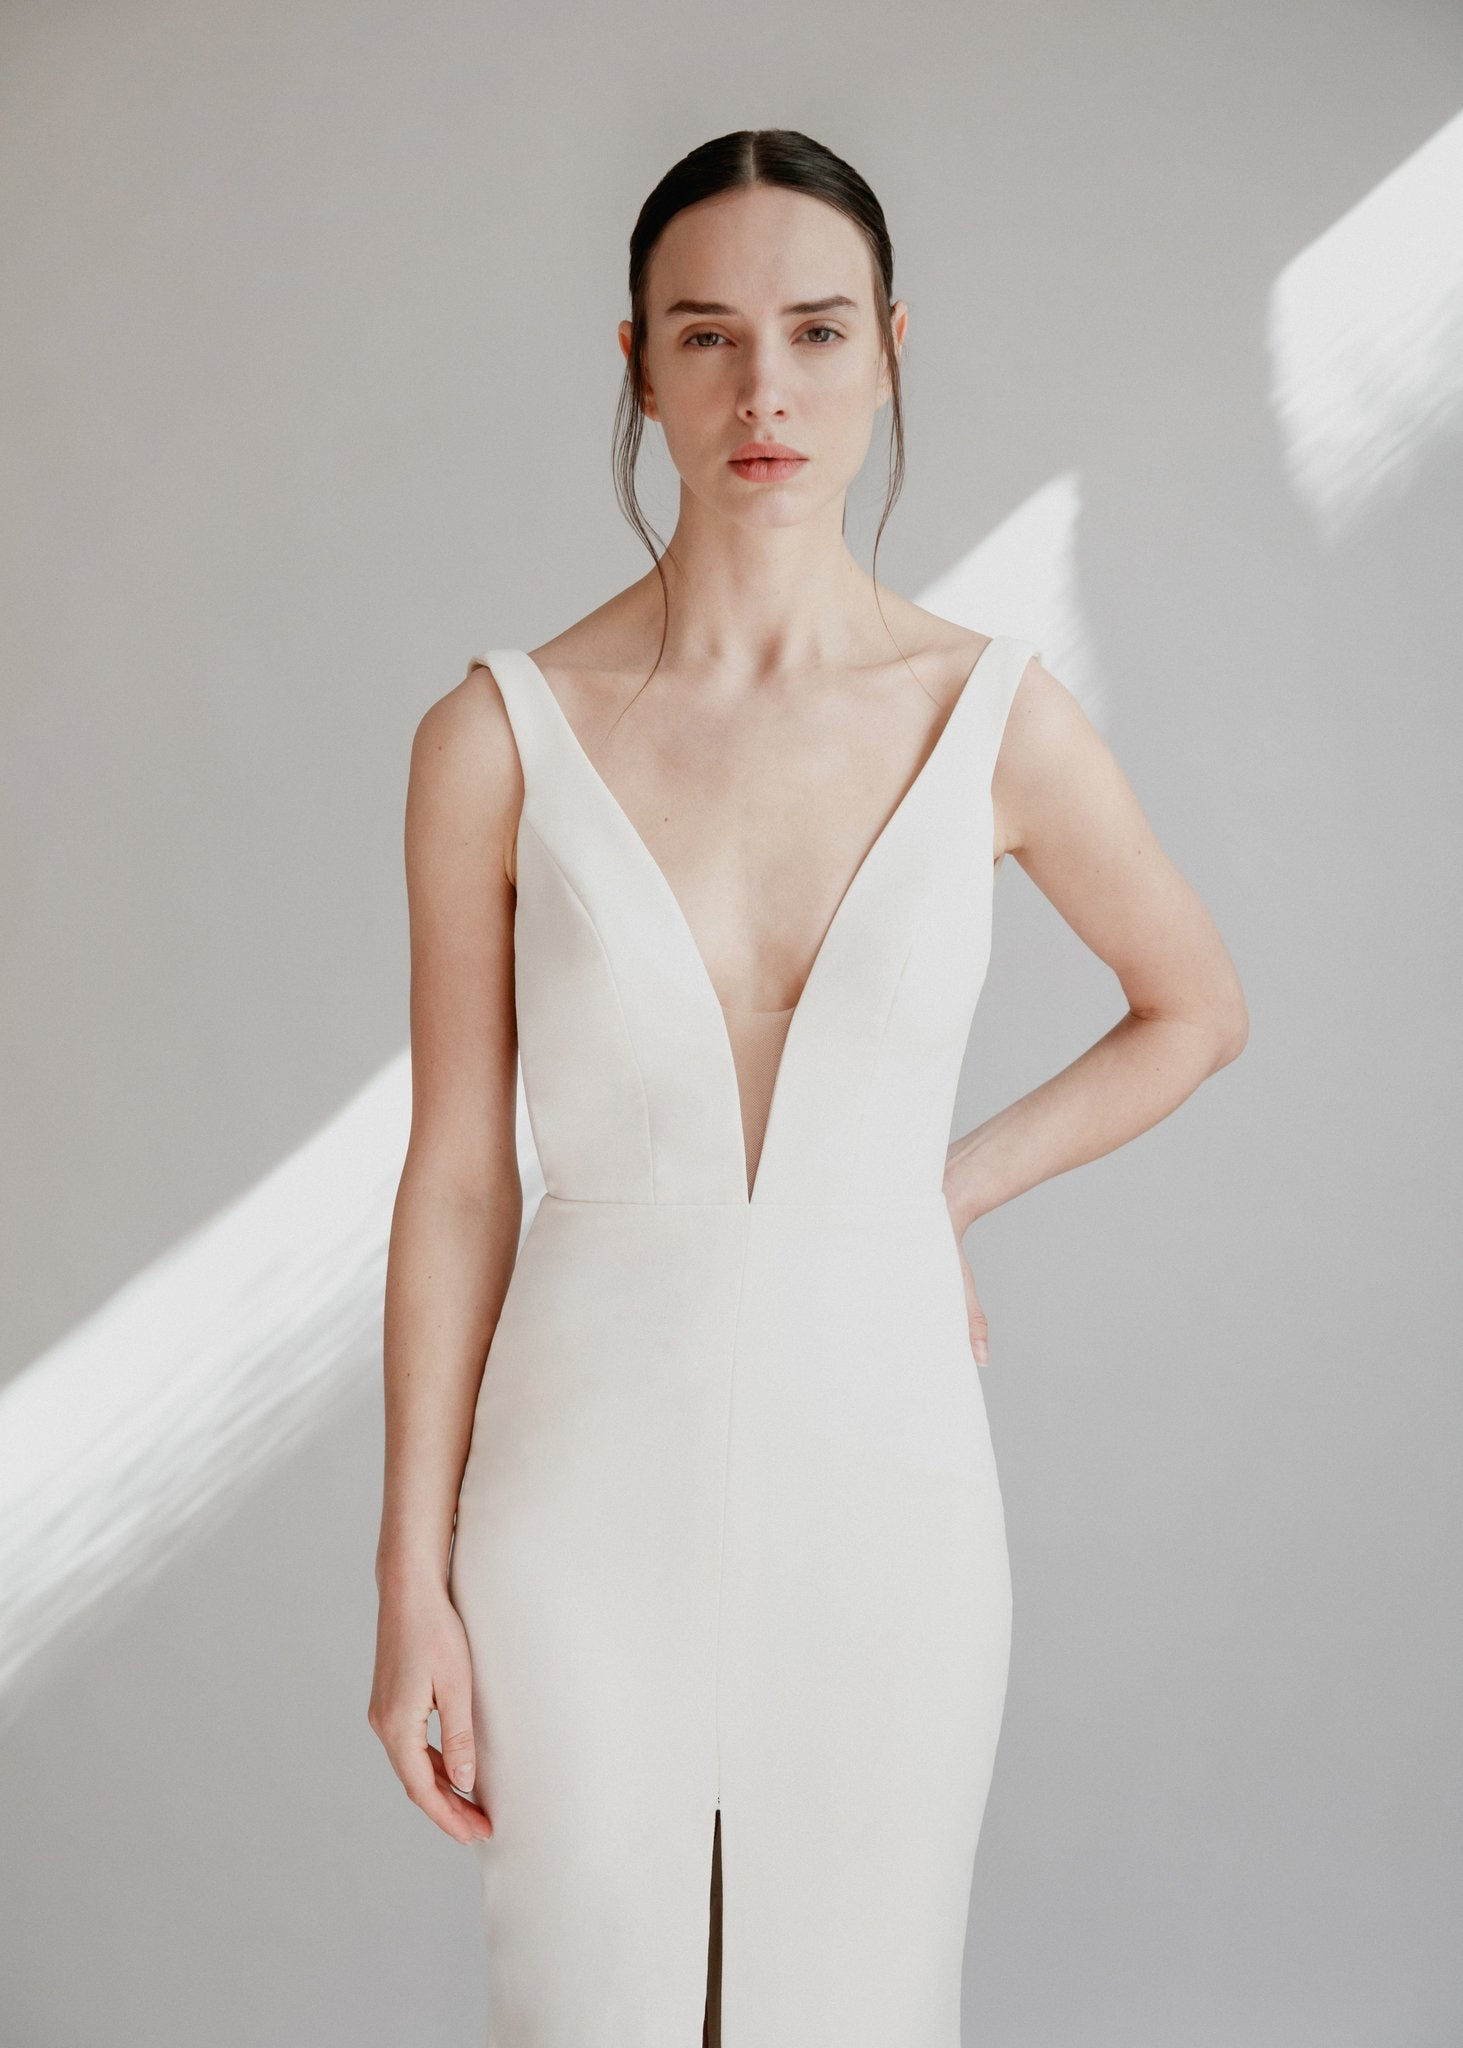 Simple and minimalist wedding dress in full crepe with a low back, deep v front, and a centre slit